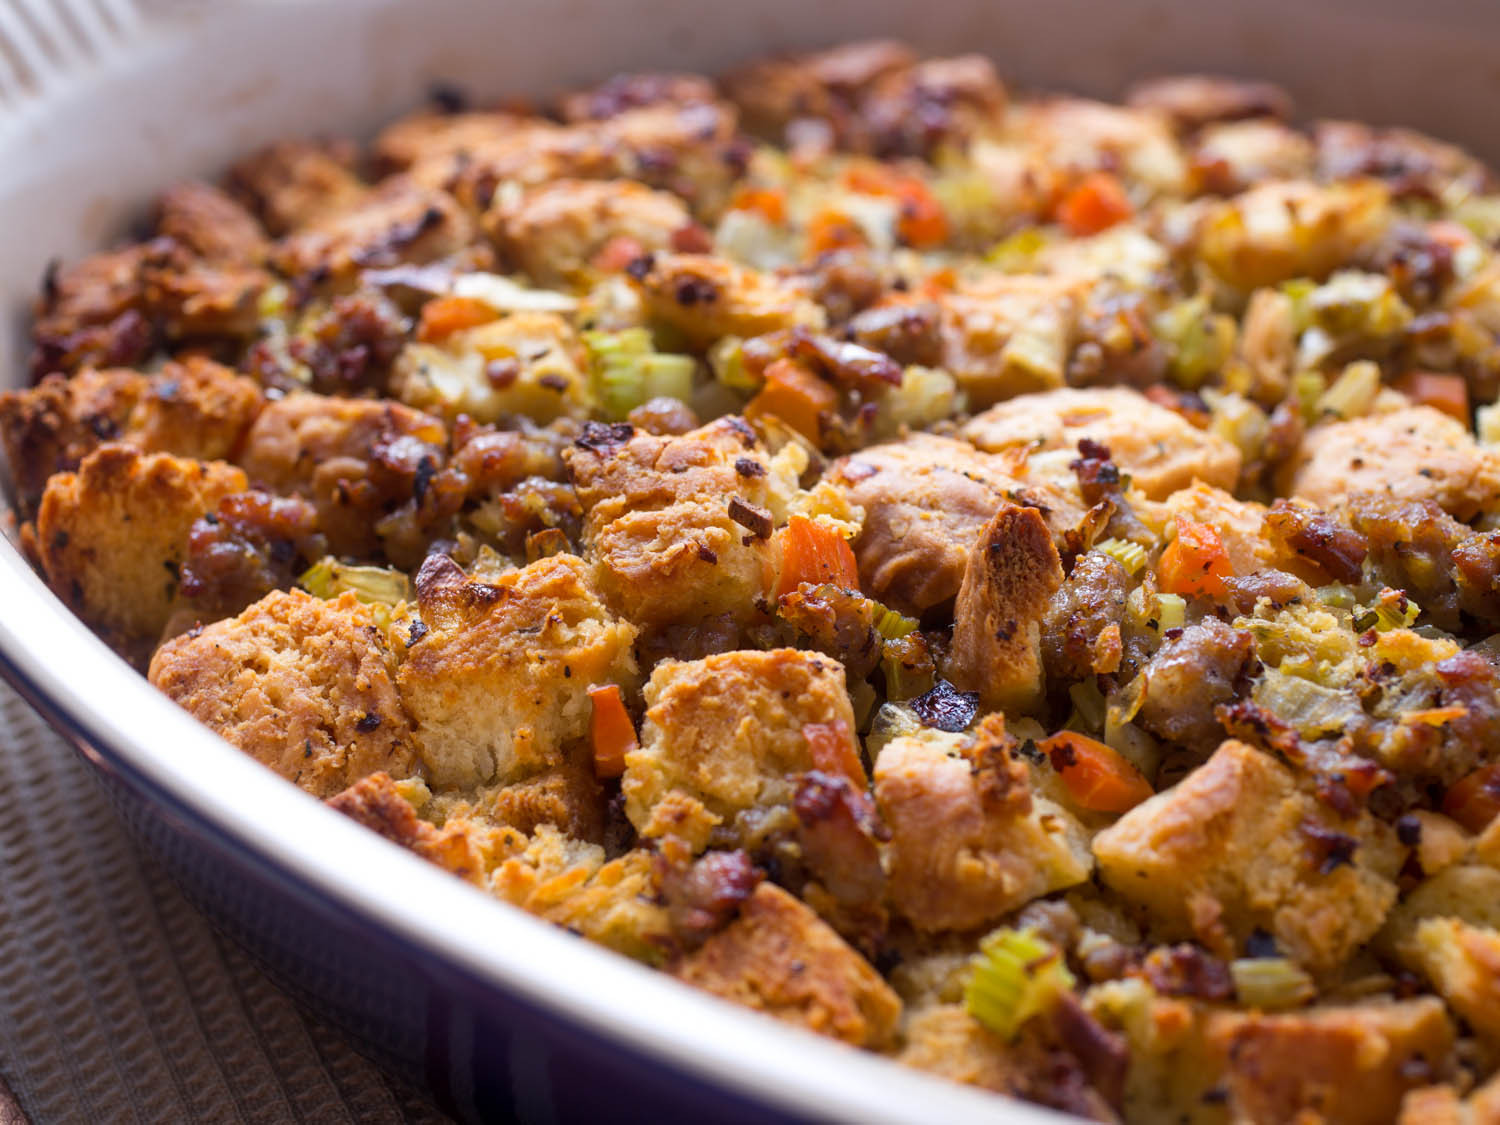 Thanksgiving Turkey Stuffing Recipe  Popeye s Buttermilk Biscuit Stuffing Recipe